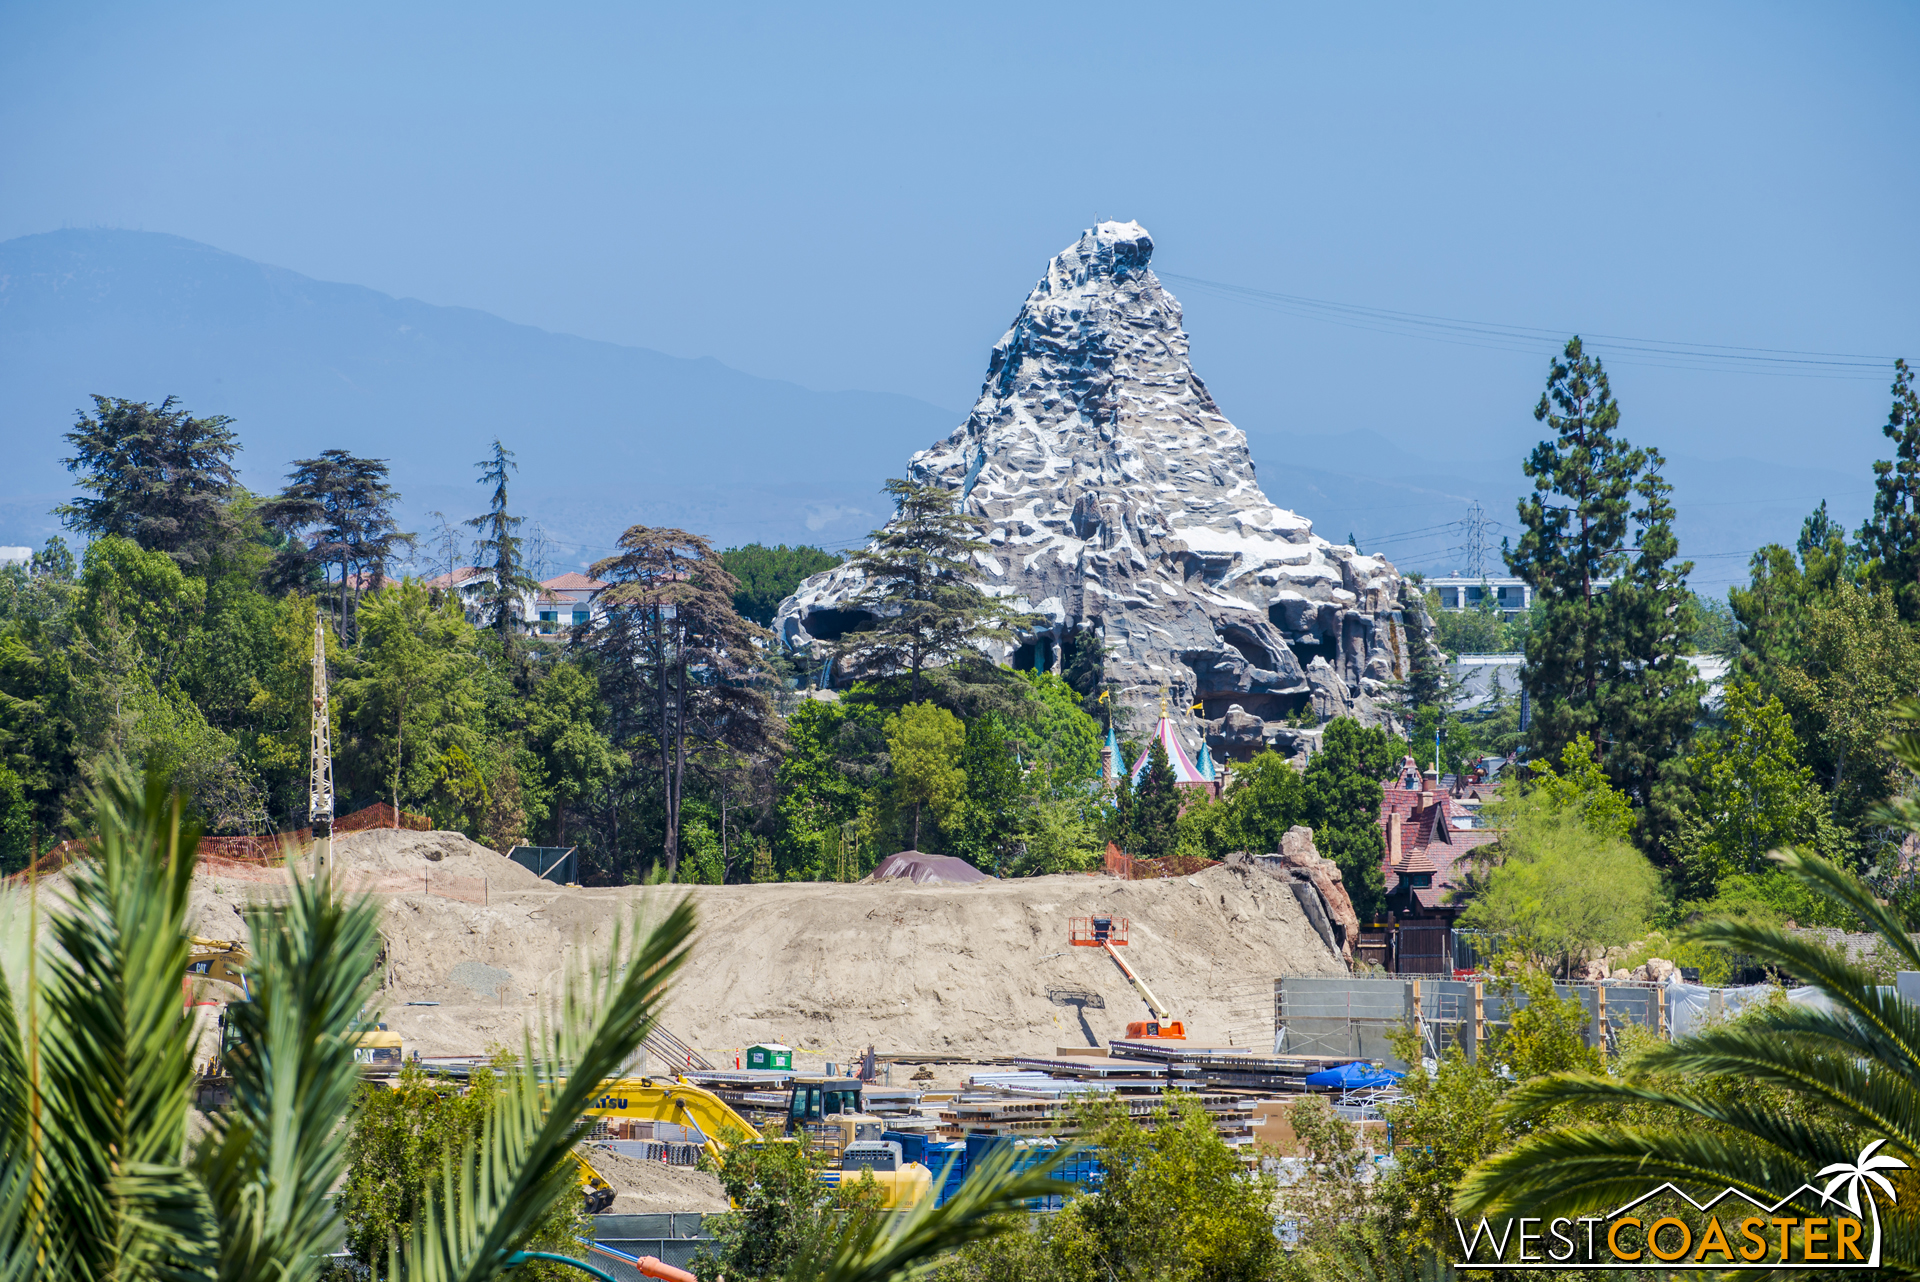 Moving over to those great mounds behind Fantasyland.